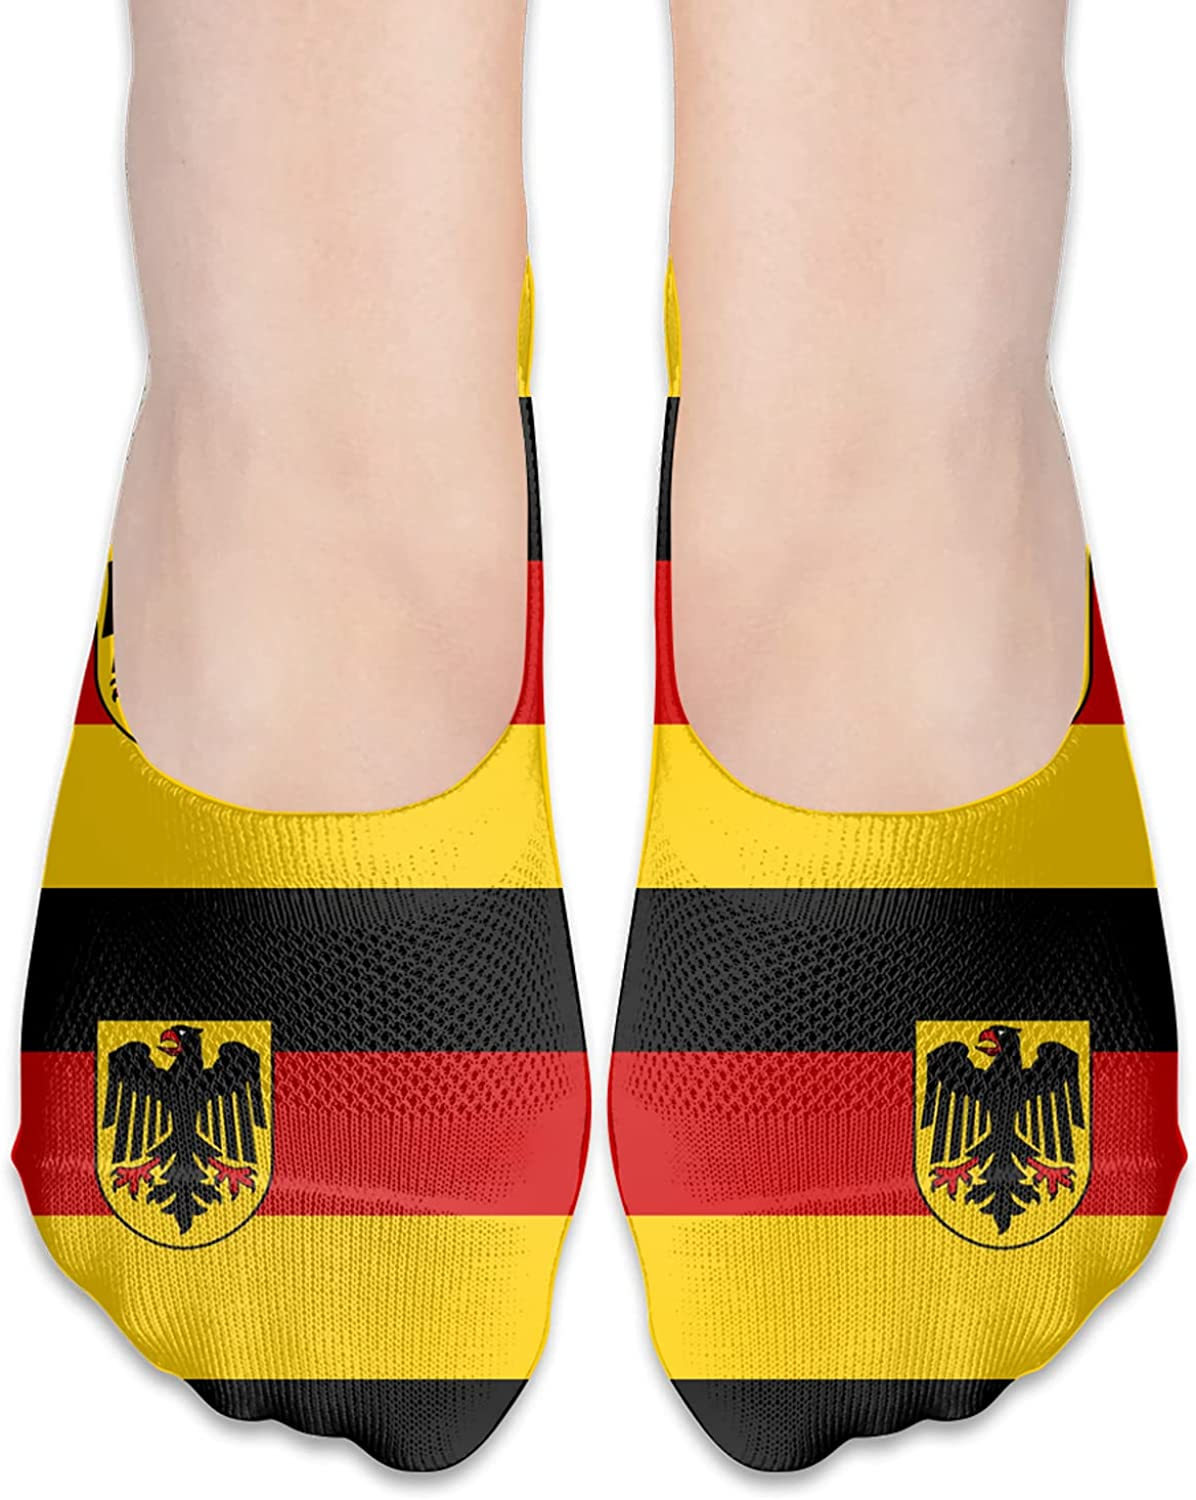 German Flags Unisex Adult Light Casual Liner Socks Non Slip No Show Ankle Socks Low Cut Invisible Socks